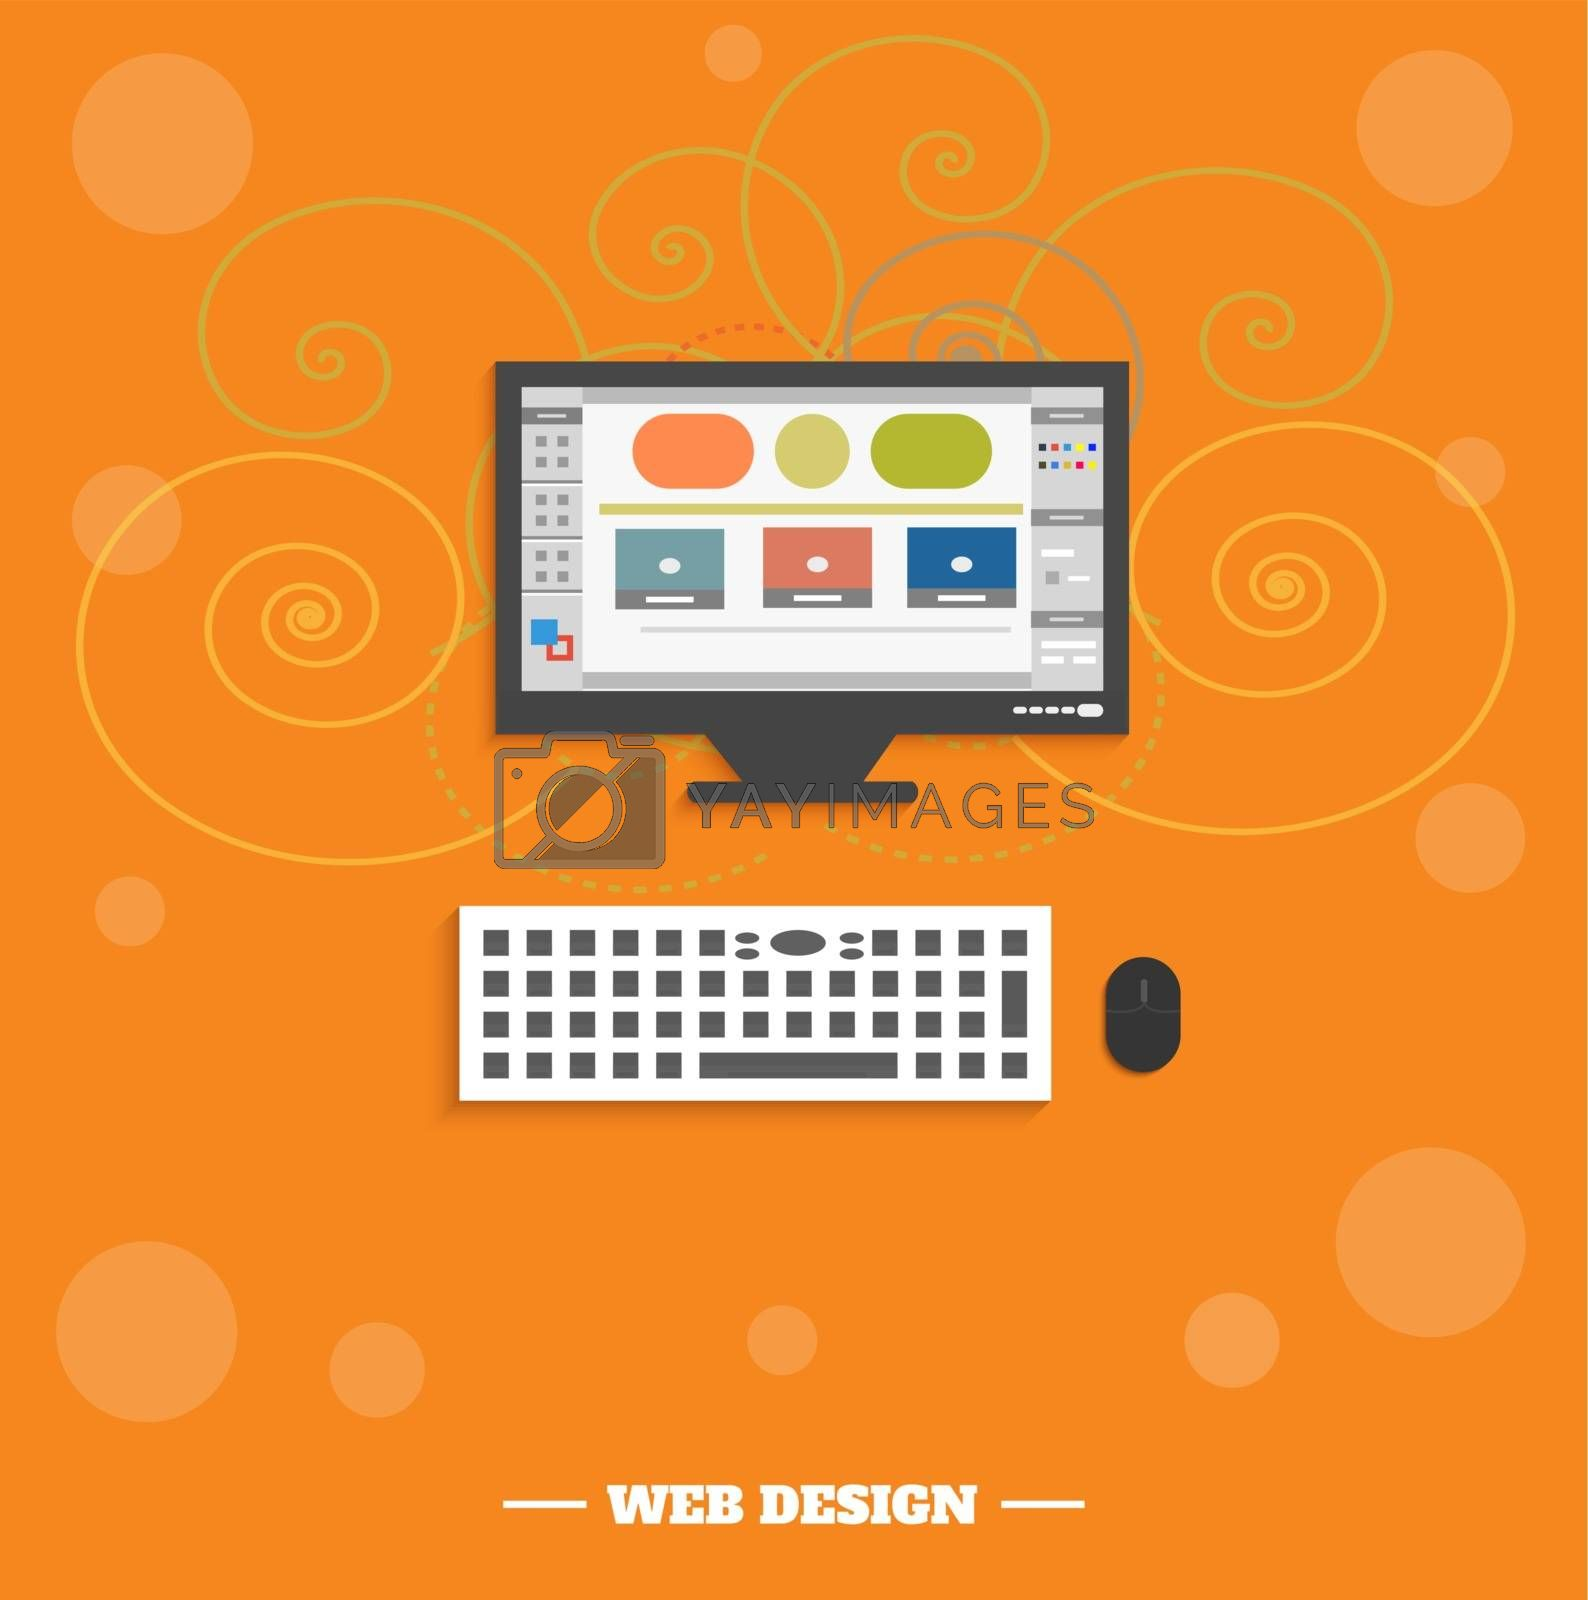 Web design concept by robuart